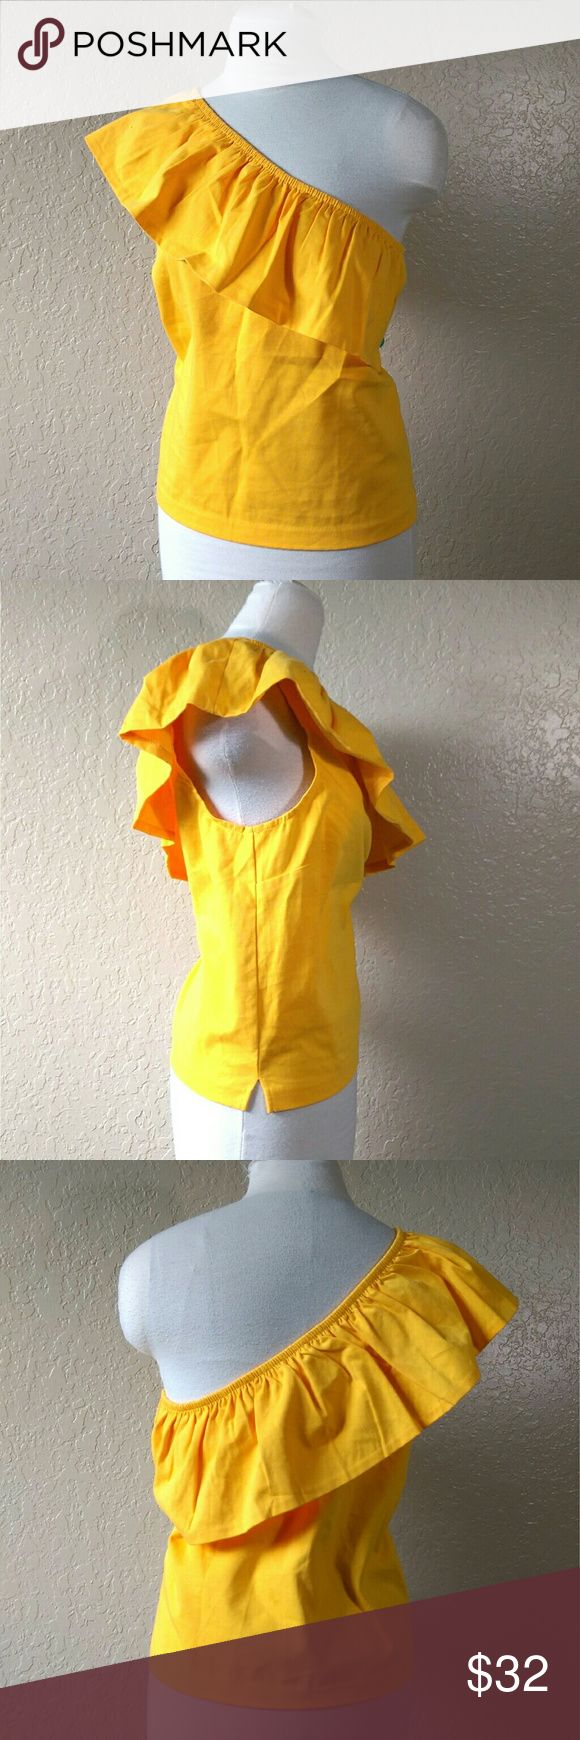 """J Crew bright yellow one shoulder ruffle top Women's J Crew bright yellow one shoulder ruffle top. Size large. Brand new, no tags. 100% cotton. Made in the Philippines.  Armpit to armpit: 20"""" Length: 23"""" J. Crew Tops Blouses"""